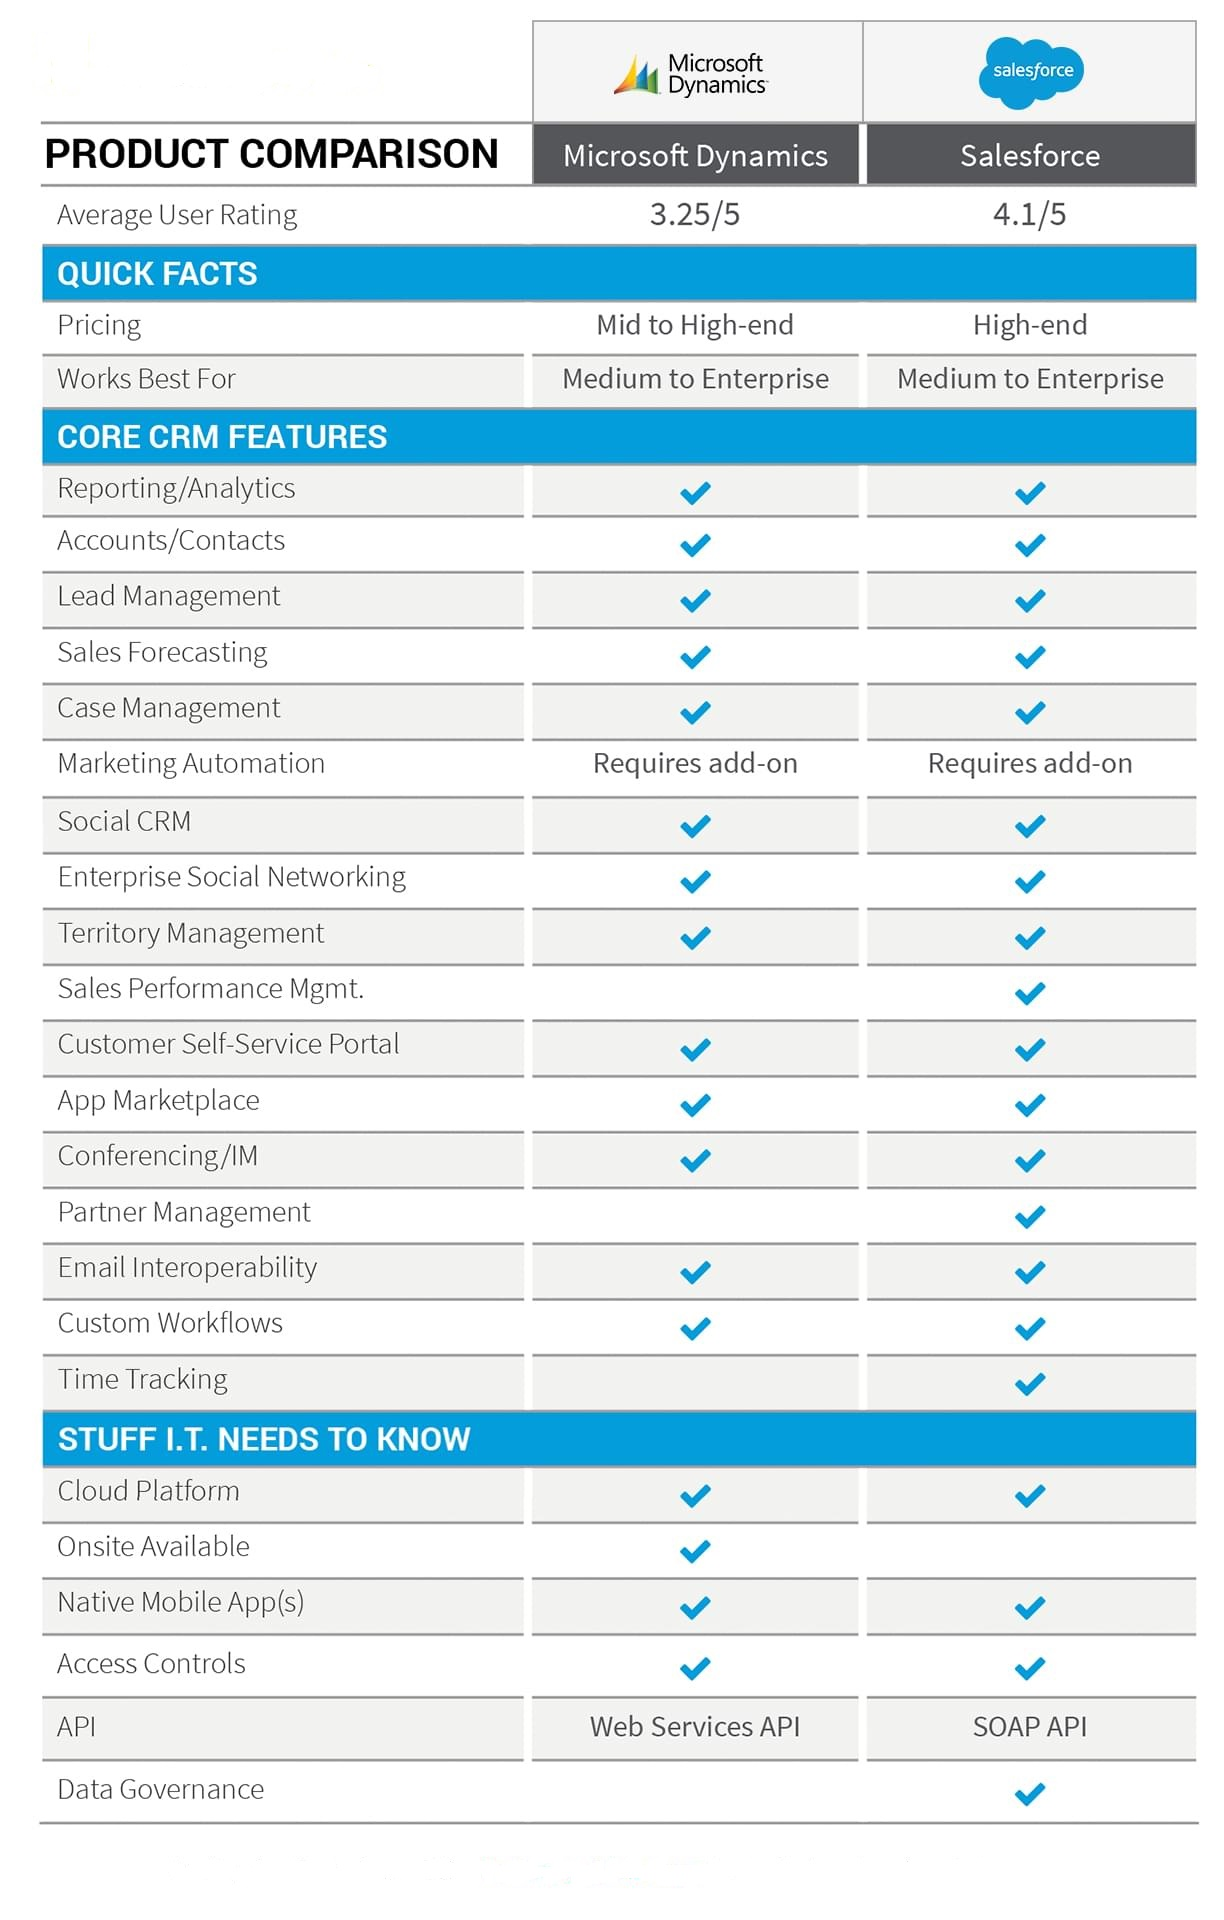 salesforce-dynamics-comparison